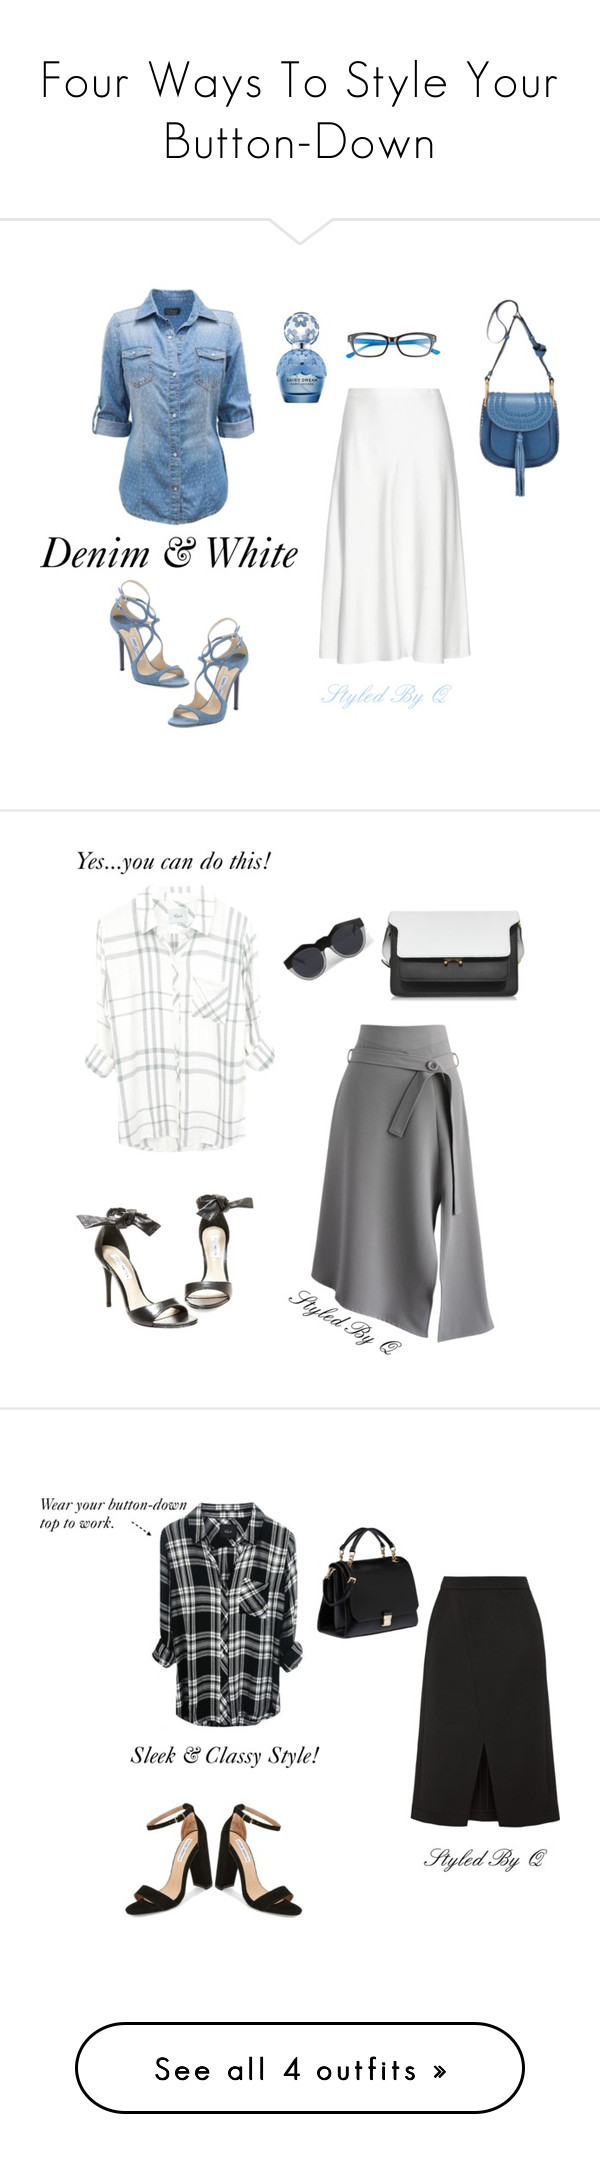 """""""Four Ways To Style Your Button-Down"""" by quintan ❤ liked on Polyvore featuring The Row, Chloé, Marc Jacobs, Jimmy Choo, Lilly Pulitzer, Chicwish, Steve Madden, Marni, Le Specs and Nina Ricci"""